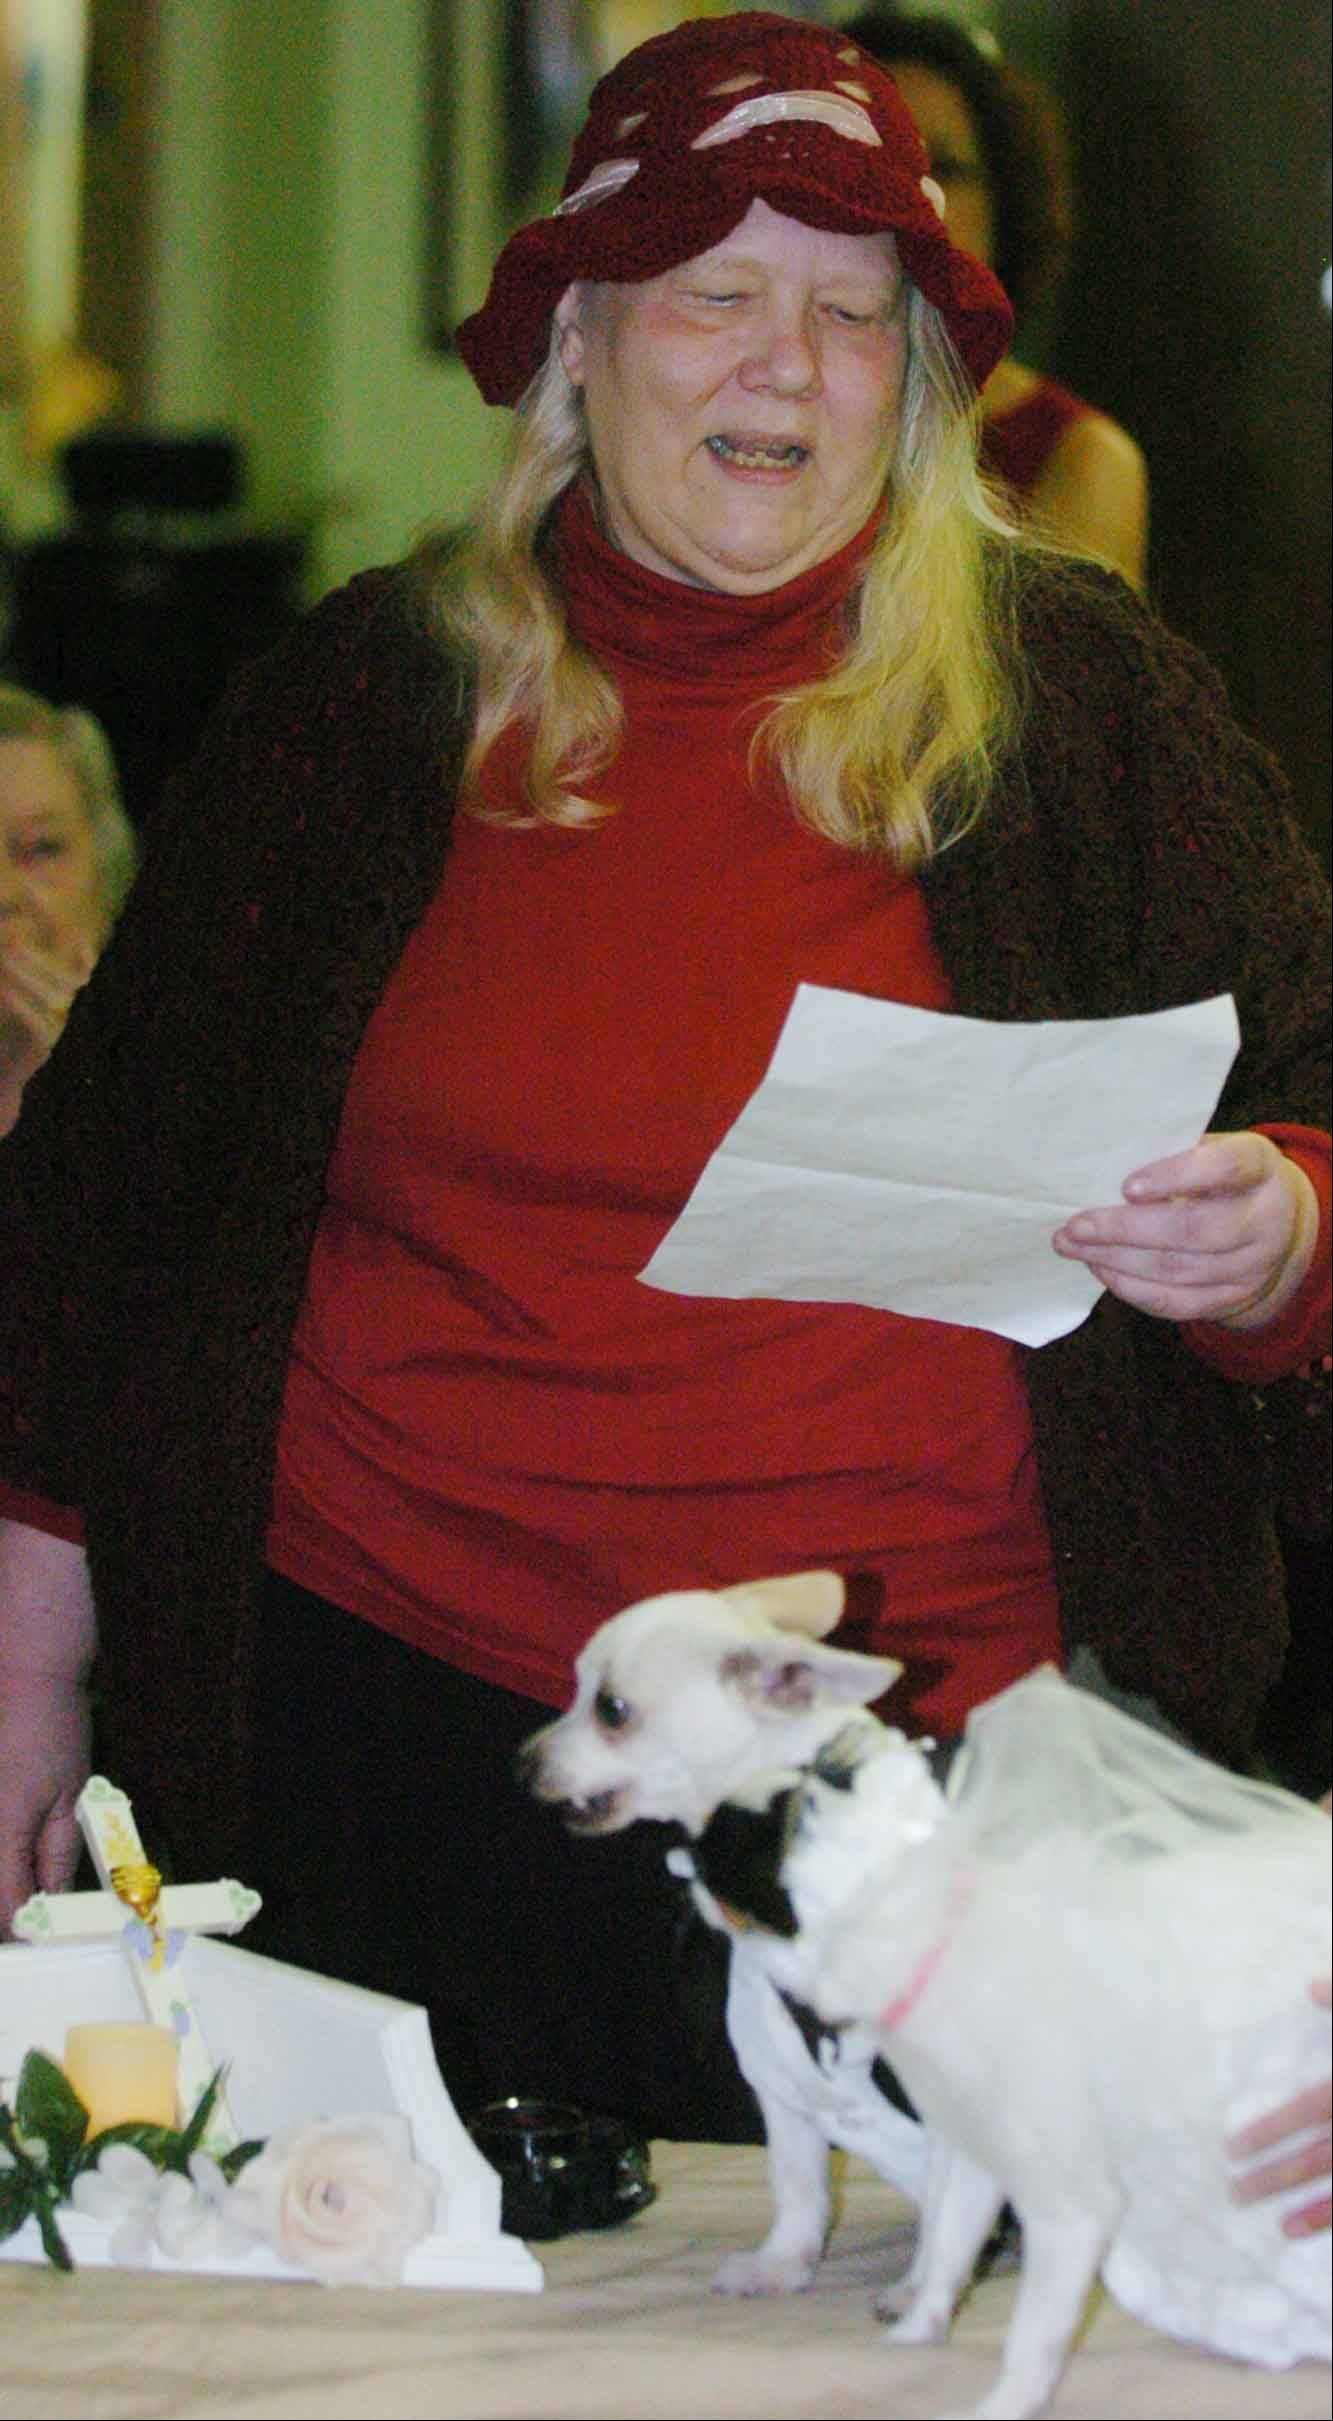 Resident Carol Brinkman conducts the service for the dog wedding at the DuPage Convalescent Center in Wheaton.